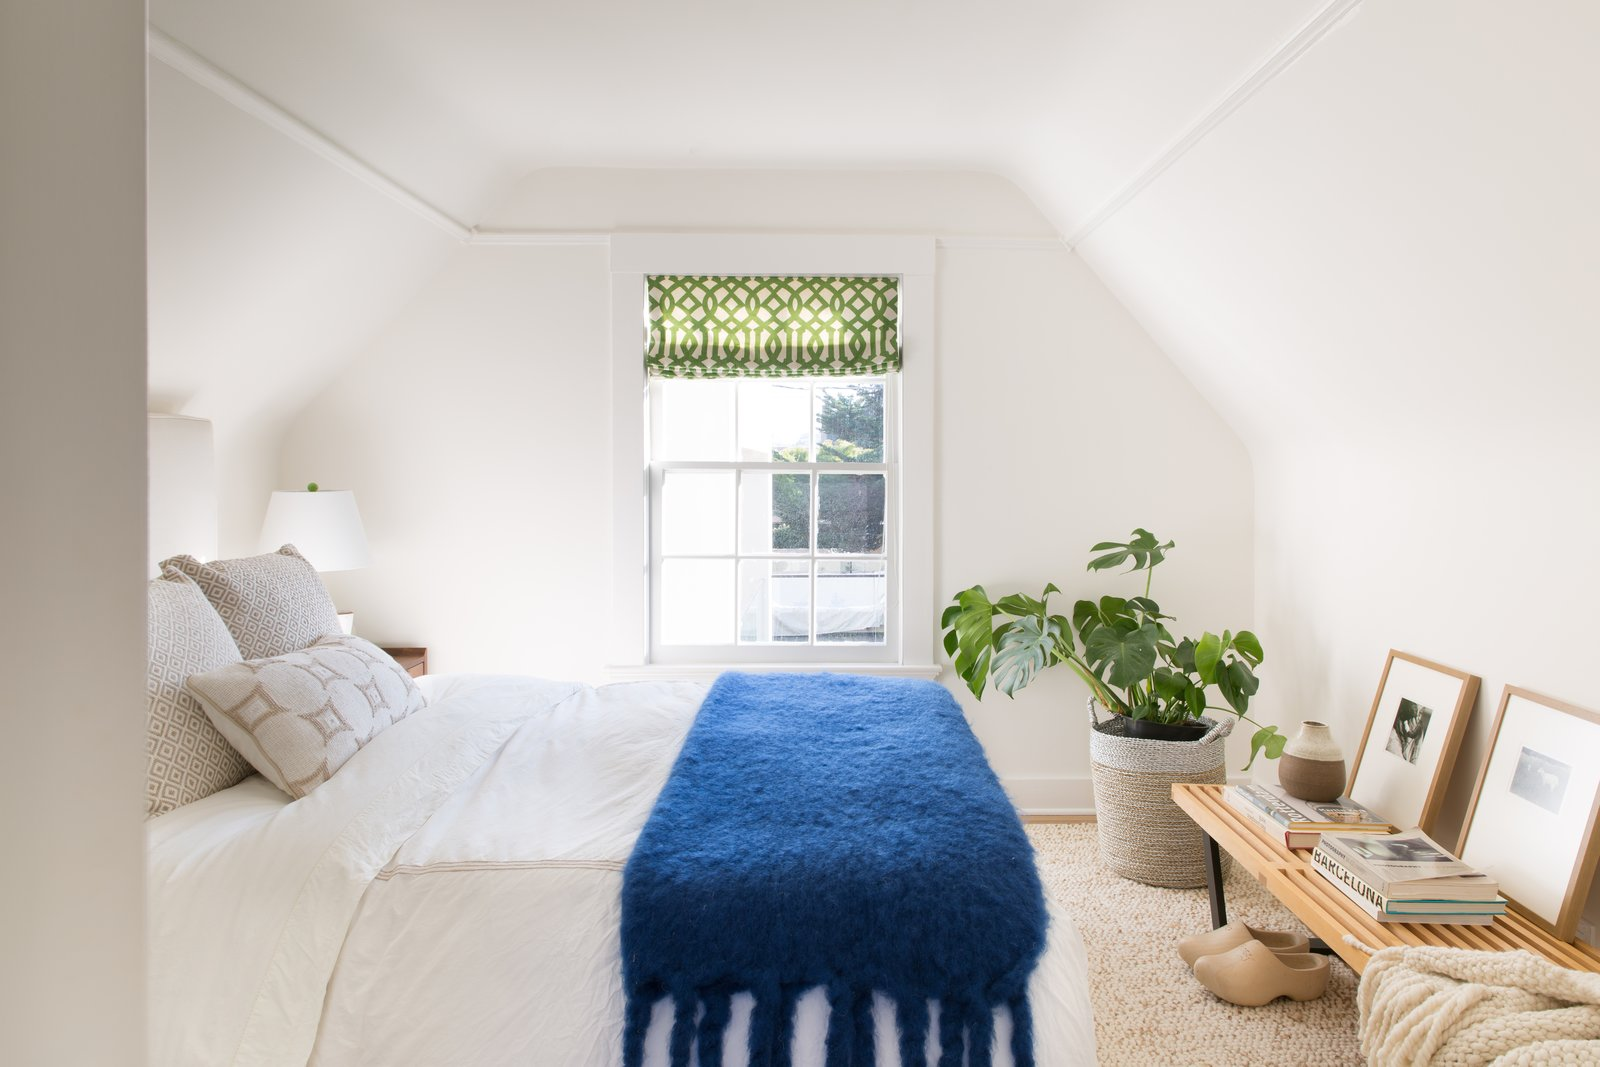 Bedroom, Bed, Lamps, Table, Light Hardwood, Bench, and Night Stands Guest bedroom with white bedding and bright blue throw.  Best Bedroom Light Hardwood Lamps Table Photos from Sea Cliff Preppy Contemporary